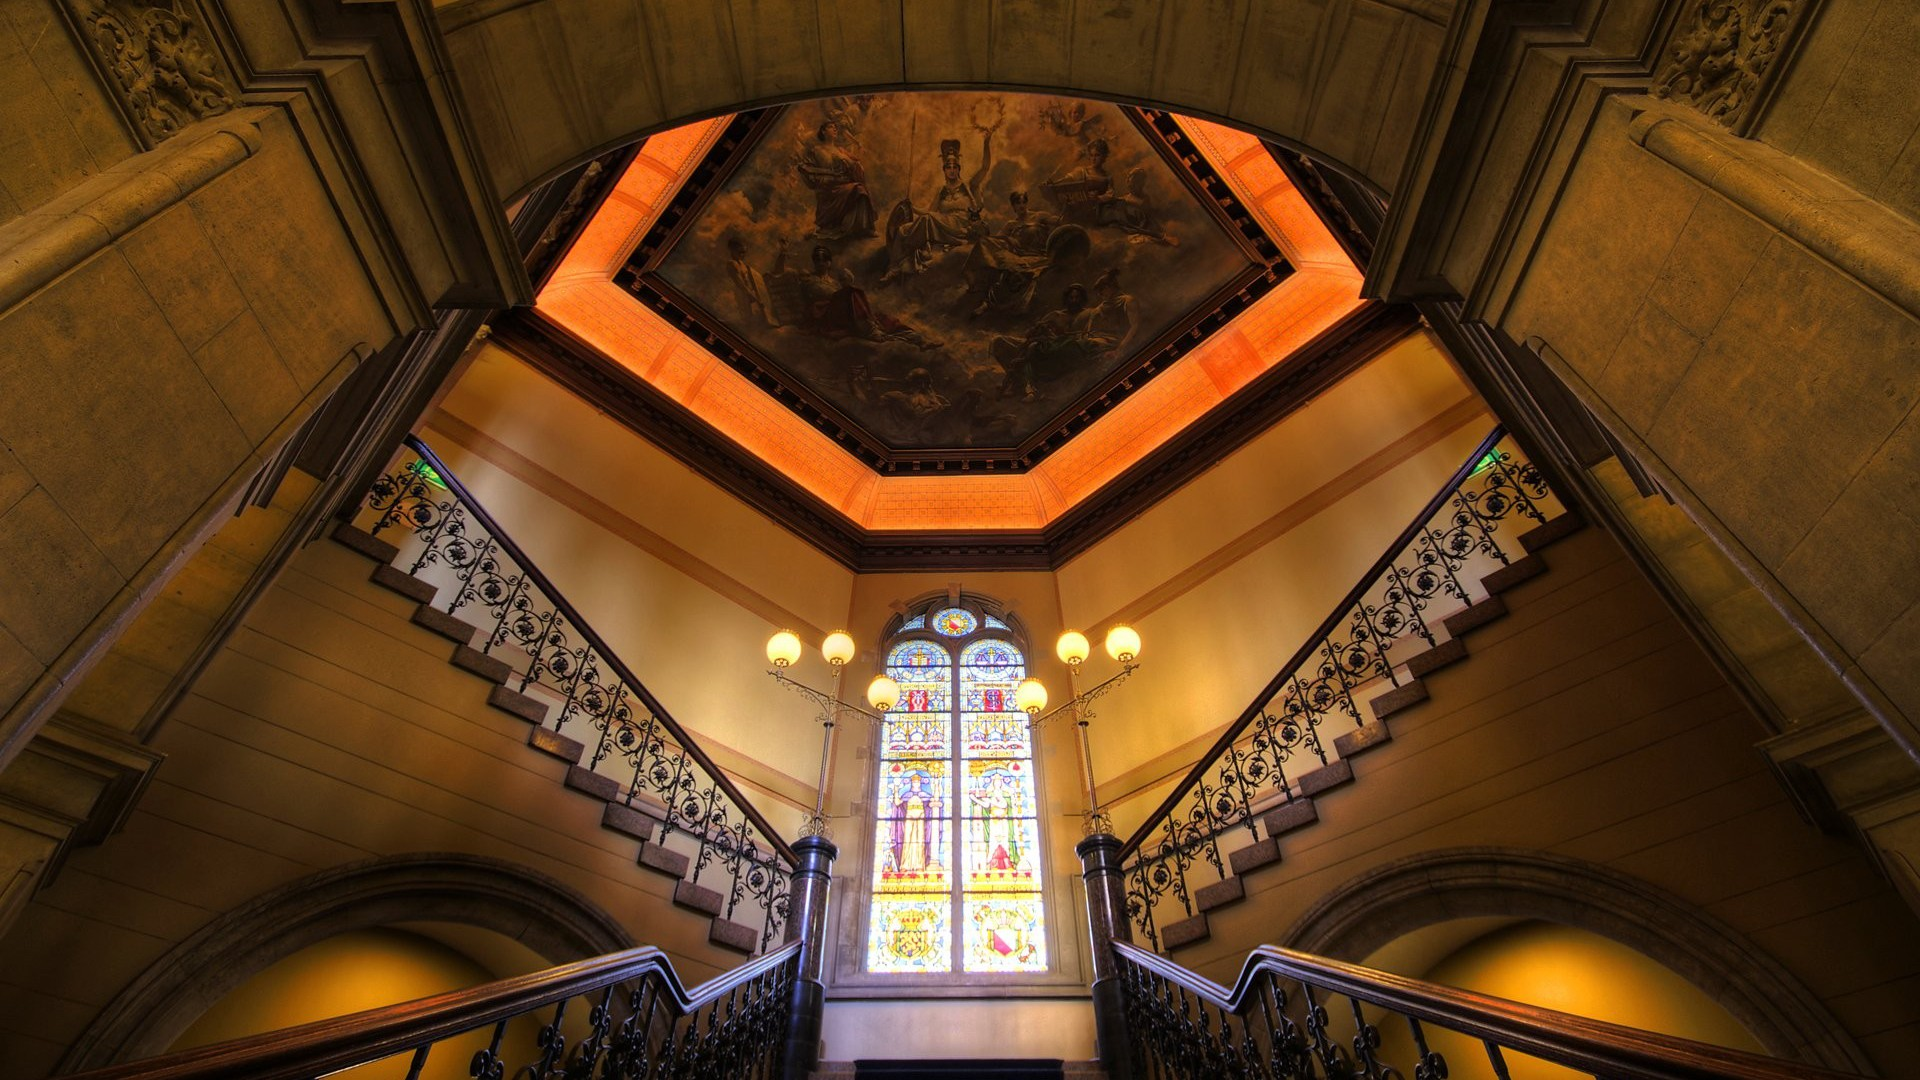 http-thehdwall.com-wp-content-uploads-2014-11-Stairs-Staircase-Window-Painting-Stained-Glass-Room-House-Mansion-Interior-Wallpaper-Photos-1920x1080